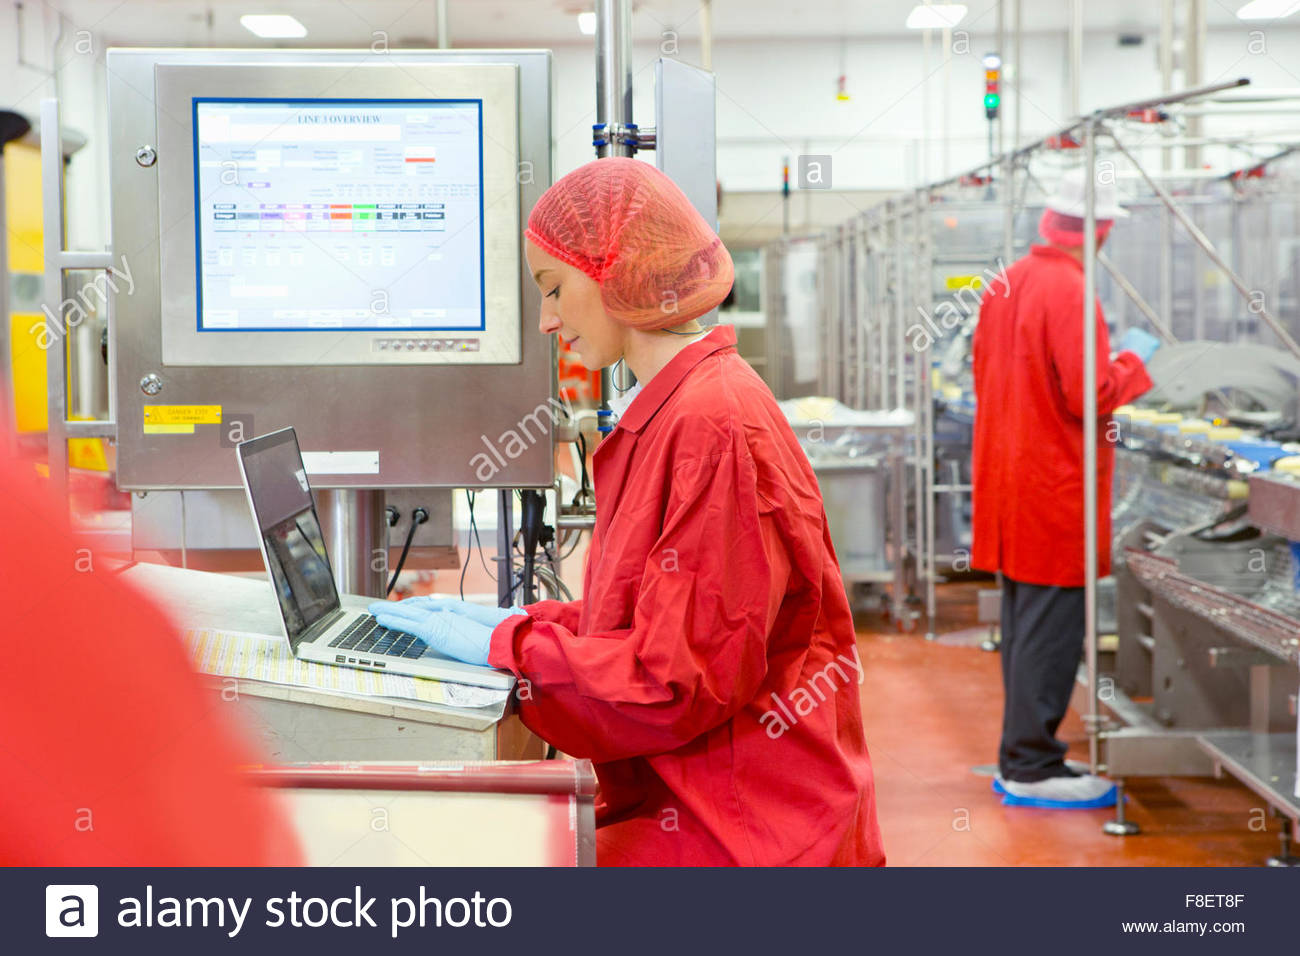 Worker using laptop near production line in cheese processing plant - Stock Image